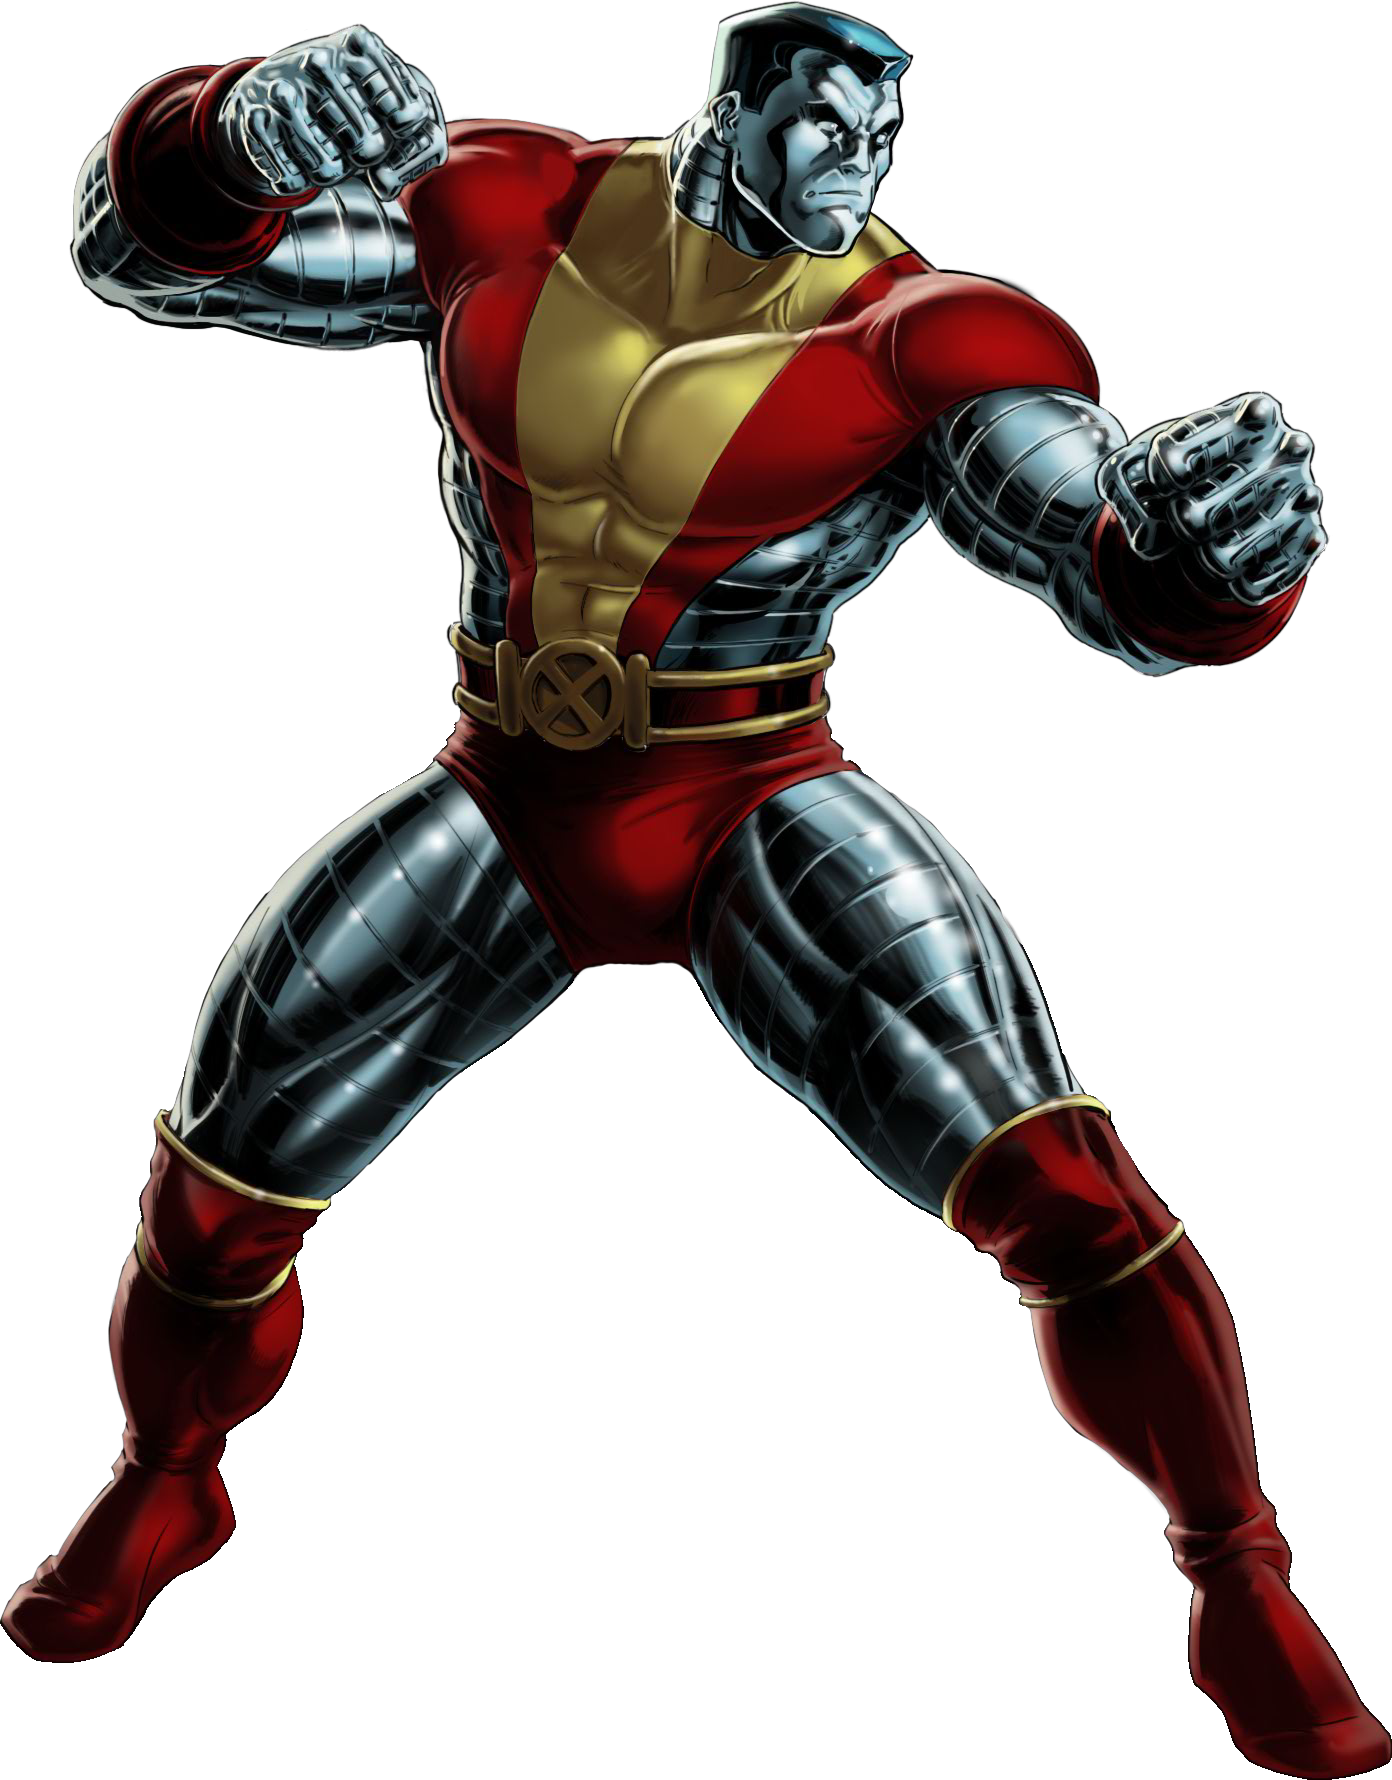 Marvel comic book clipart png freeuse colossus comics   Colossus VS Ironclad   Toy/Character Design ... png freeuse